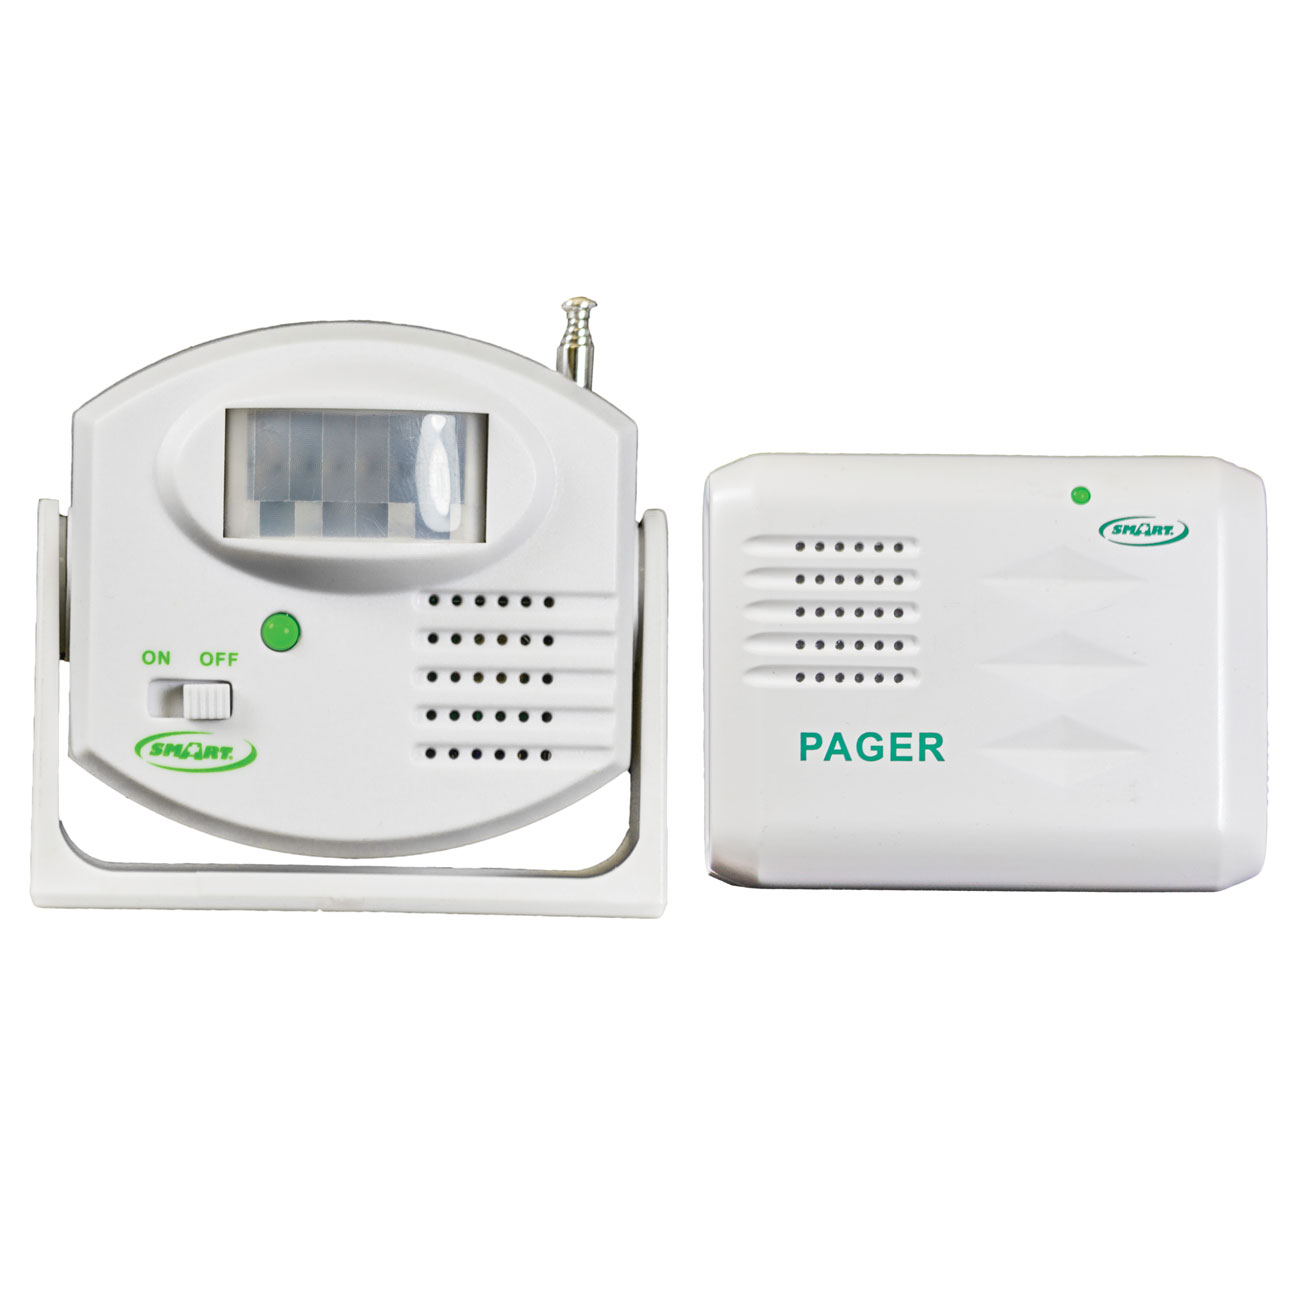 Motion Sensor and Pager - One to One System